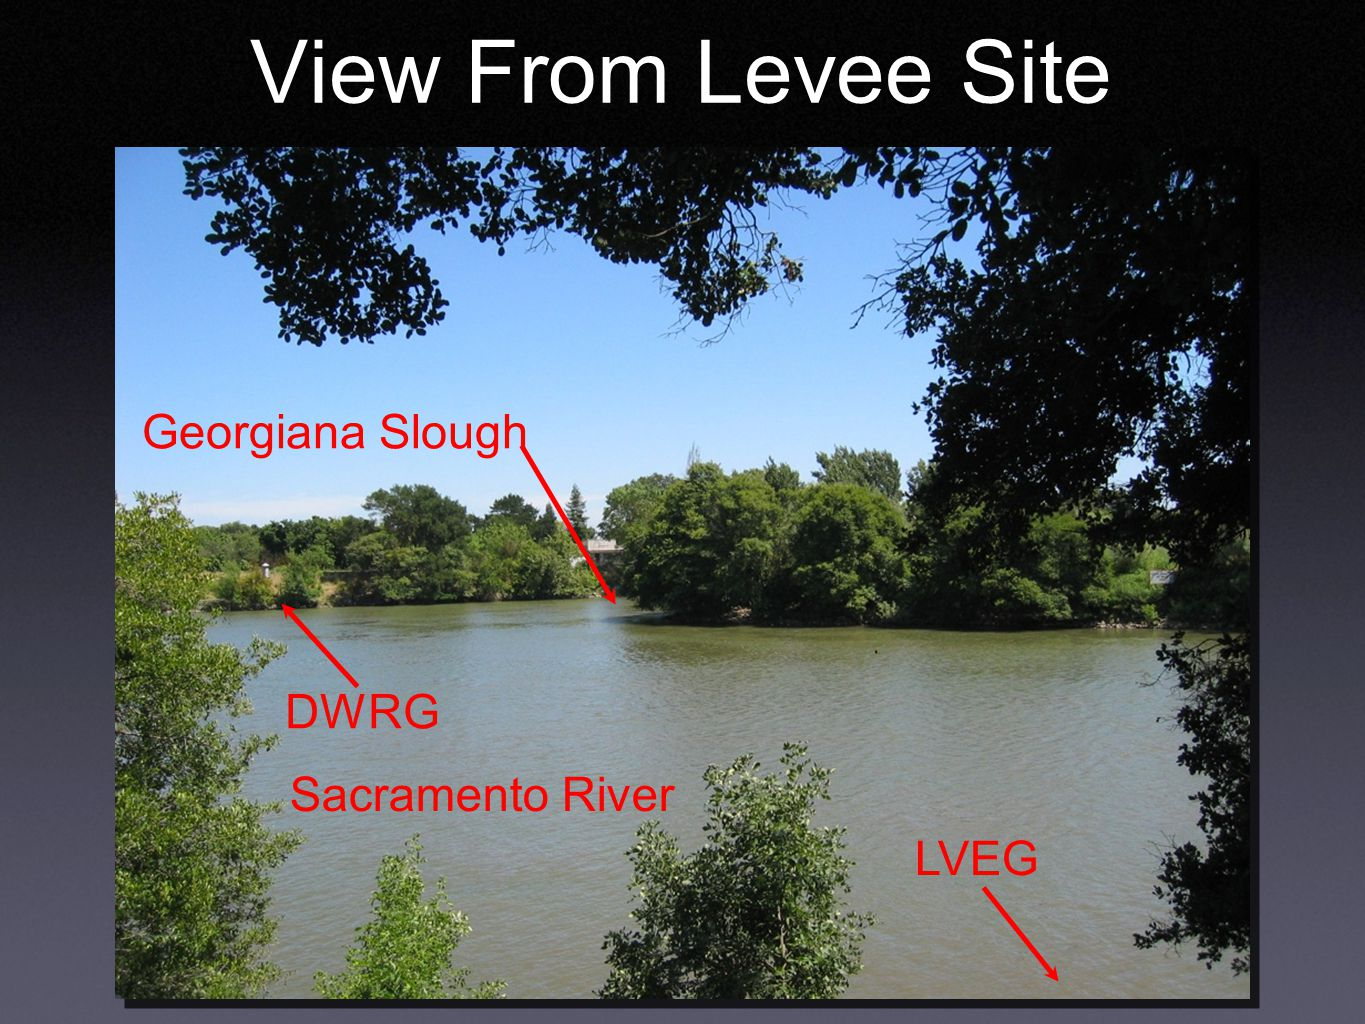 View From Levee Site Georgiana Slough Sacramento River DWRG LVEG